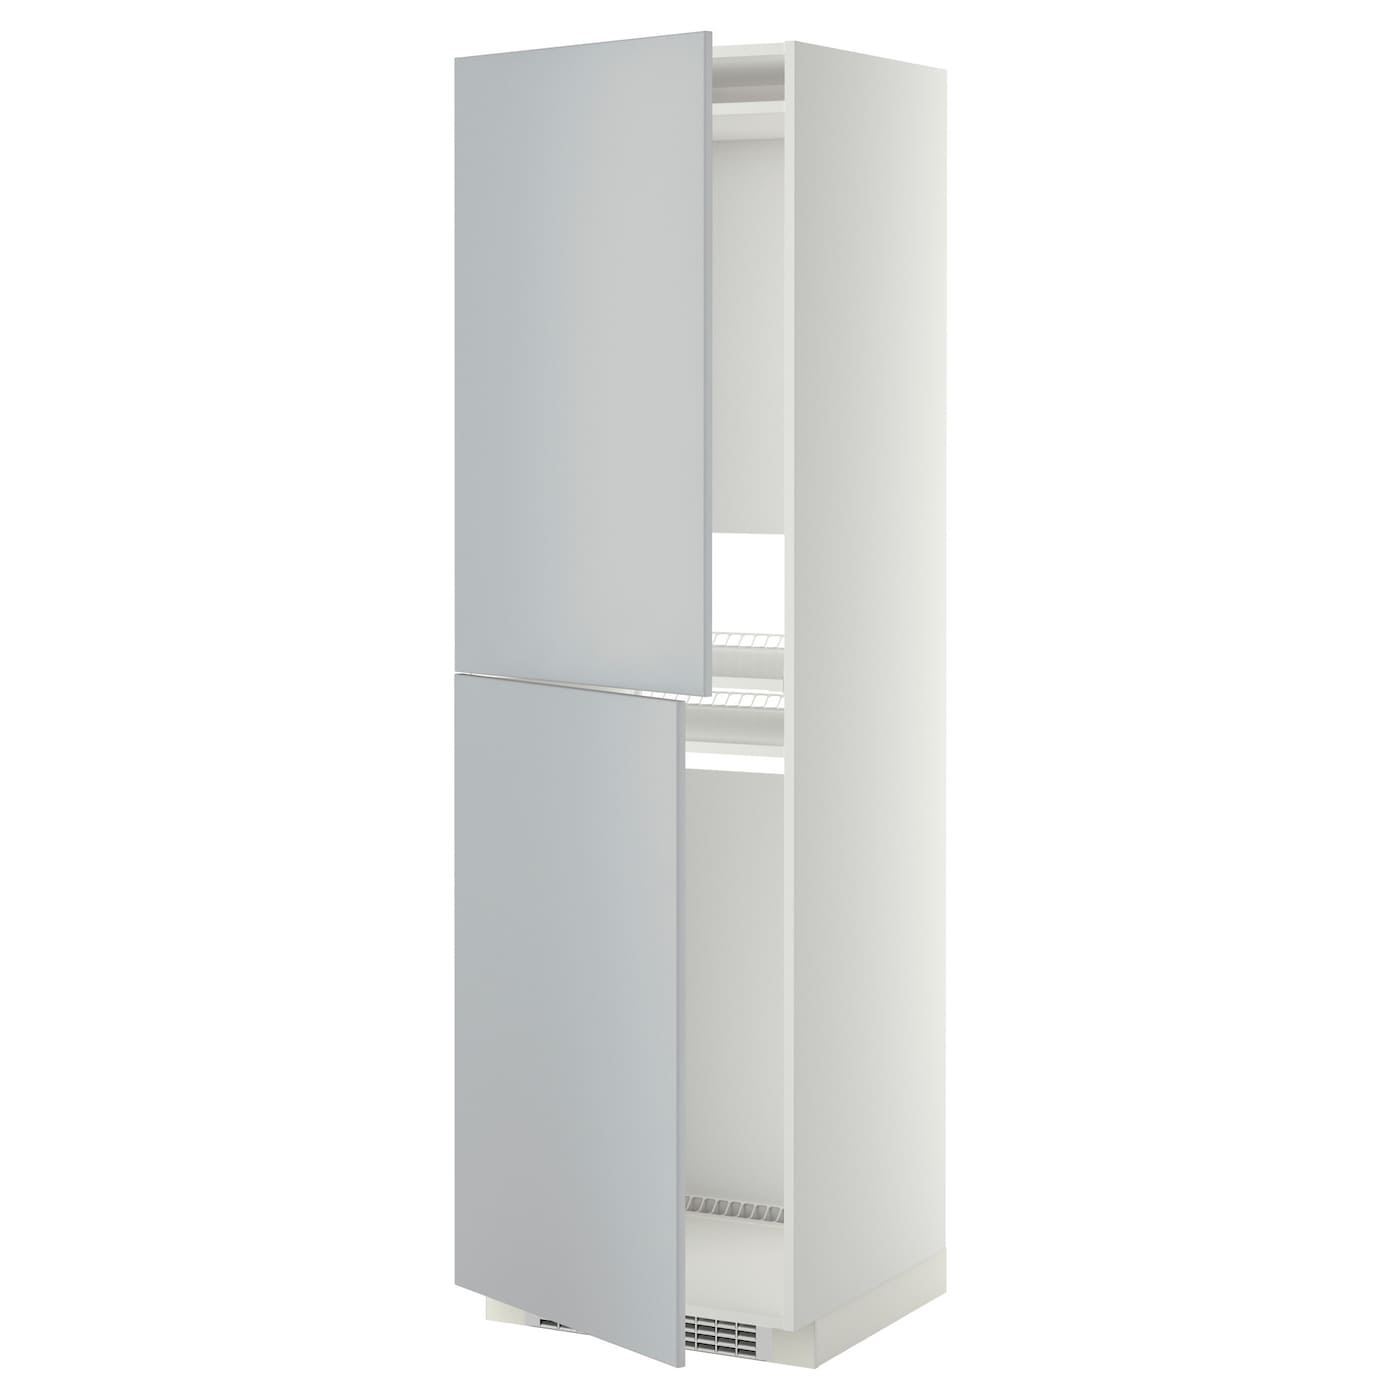 metod high cabinet for fridge freezer white veddinge grey 60 x 60 x 200 cm ikea. Black Bedroom Furniture Sets. Home Design Ideas